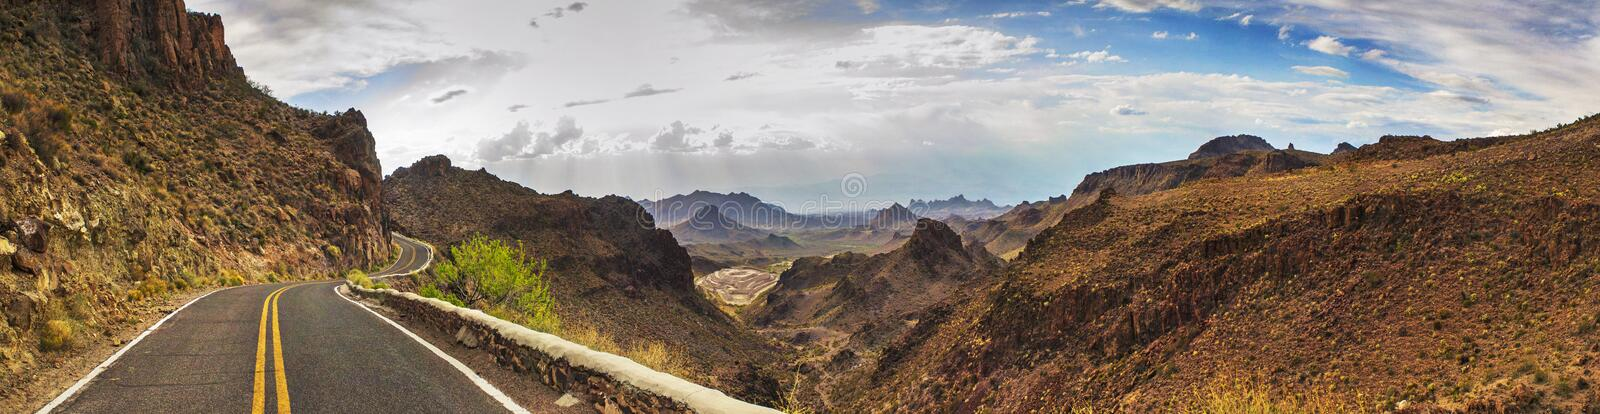 ROUTE 66 - CALIFORNIA / ARIZONA - PANORAMA - AERIAL VIEW royalty free stock images